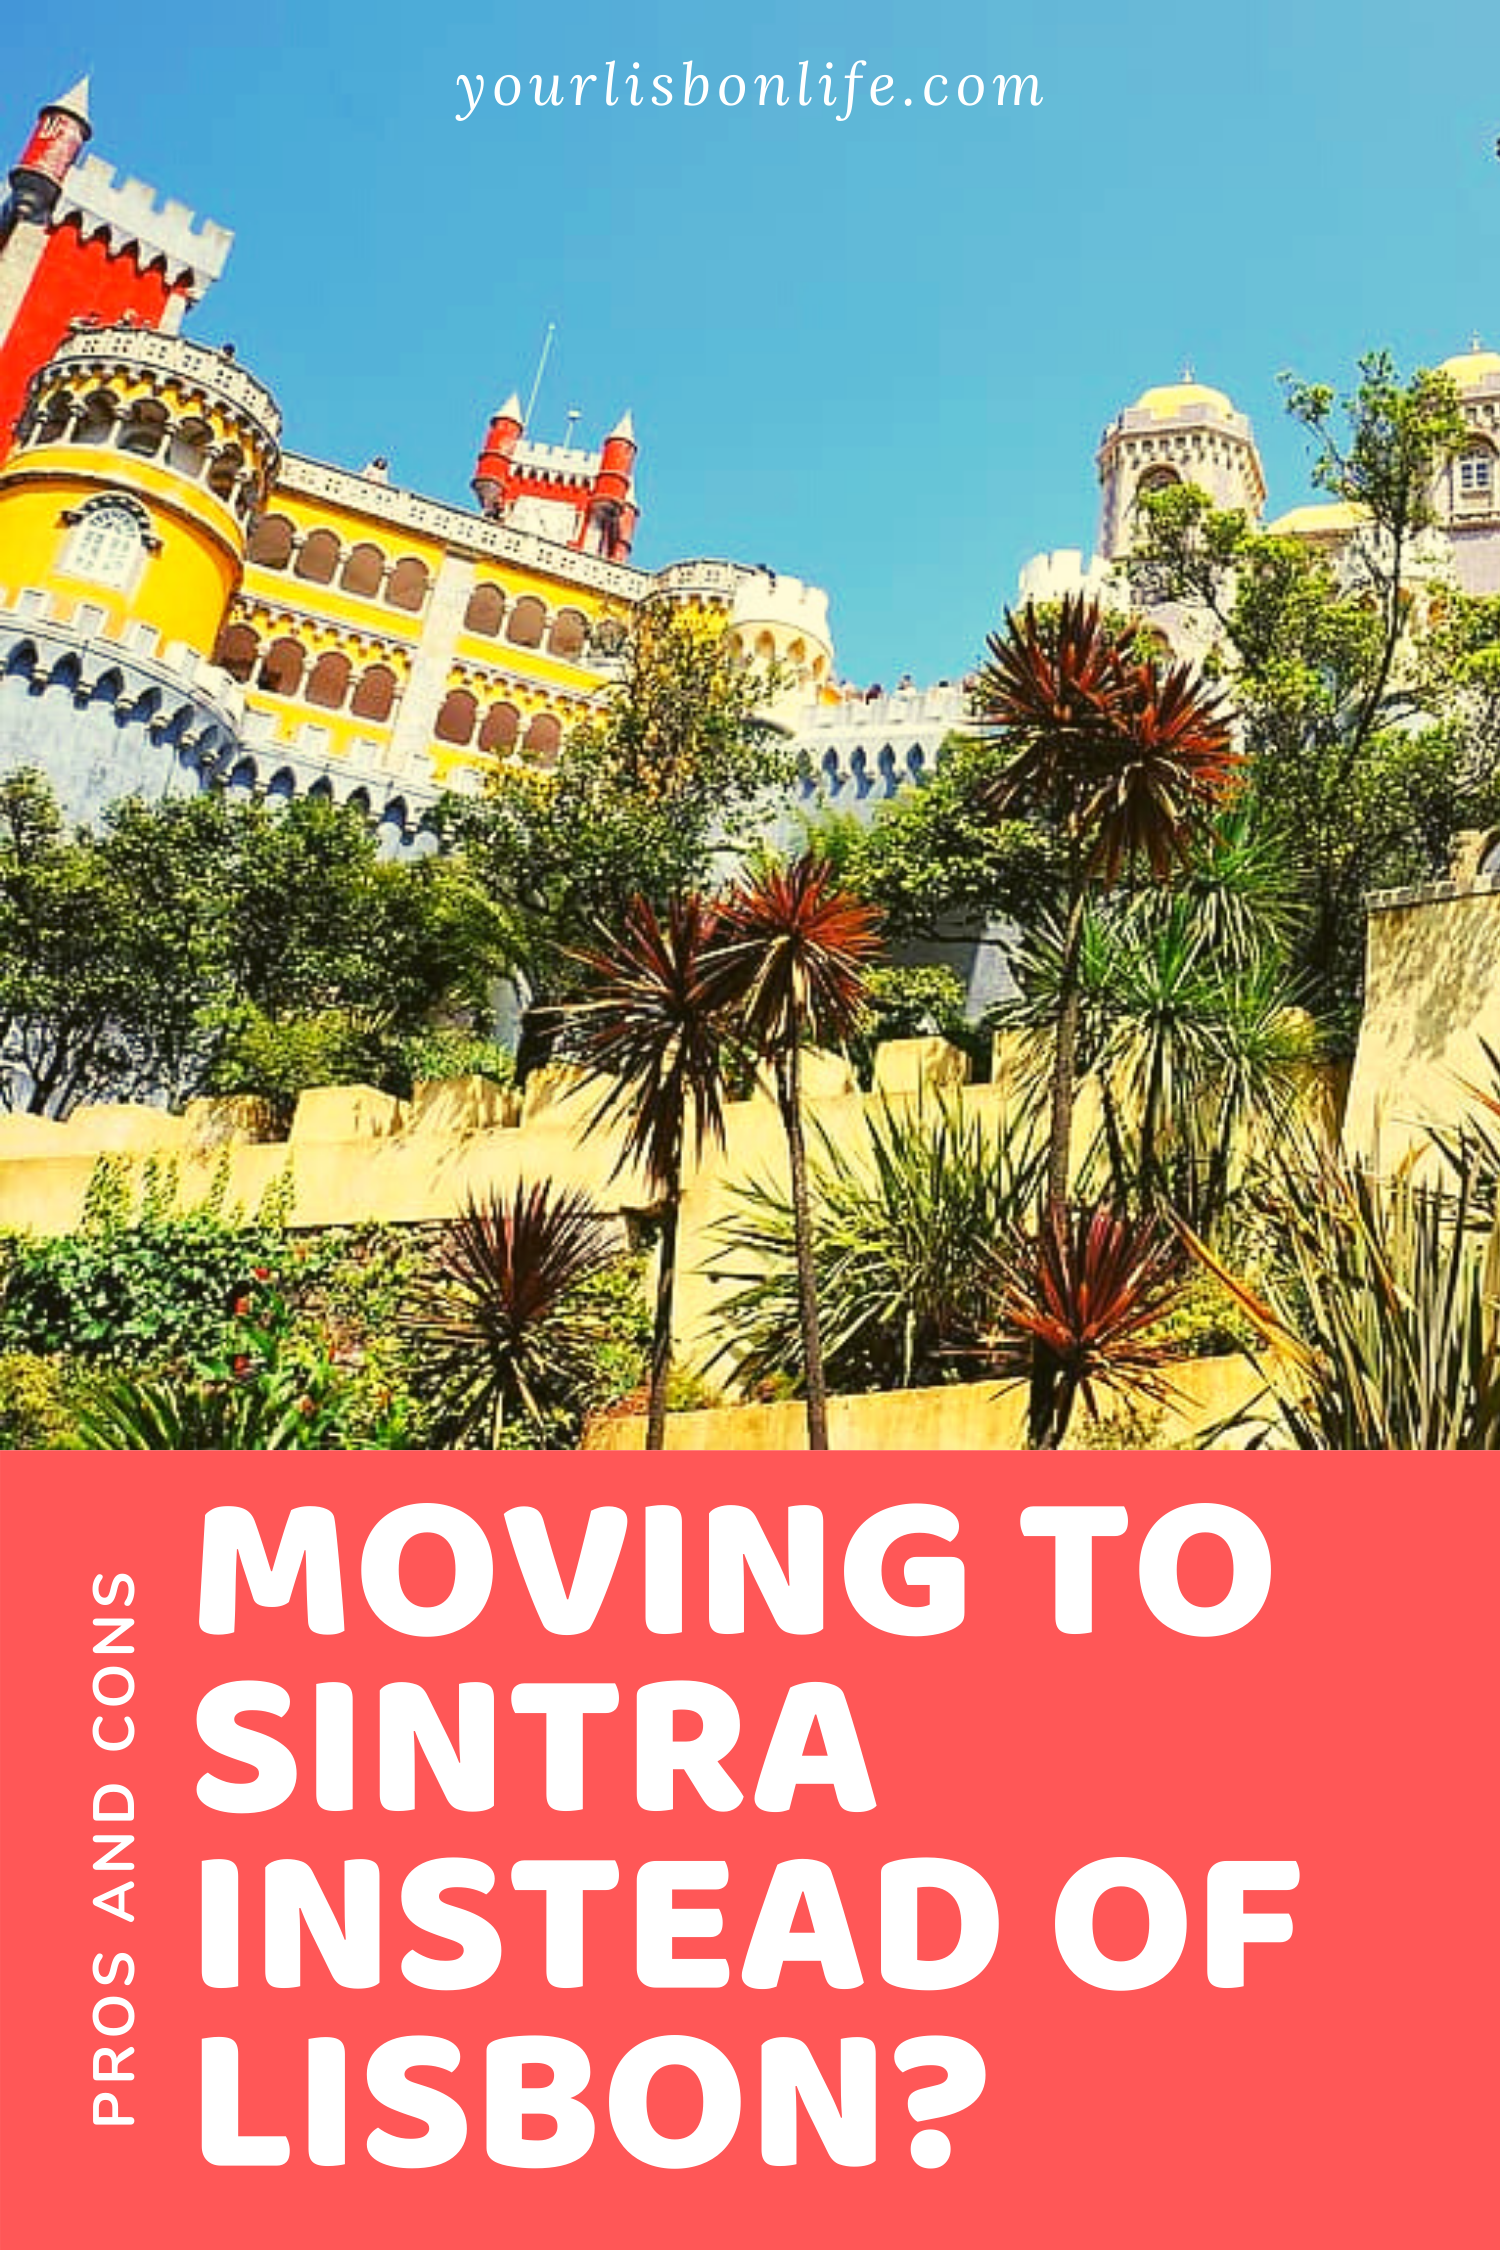 Moving to Sintra Instead of Lisbon: Pros and cons